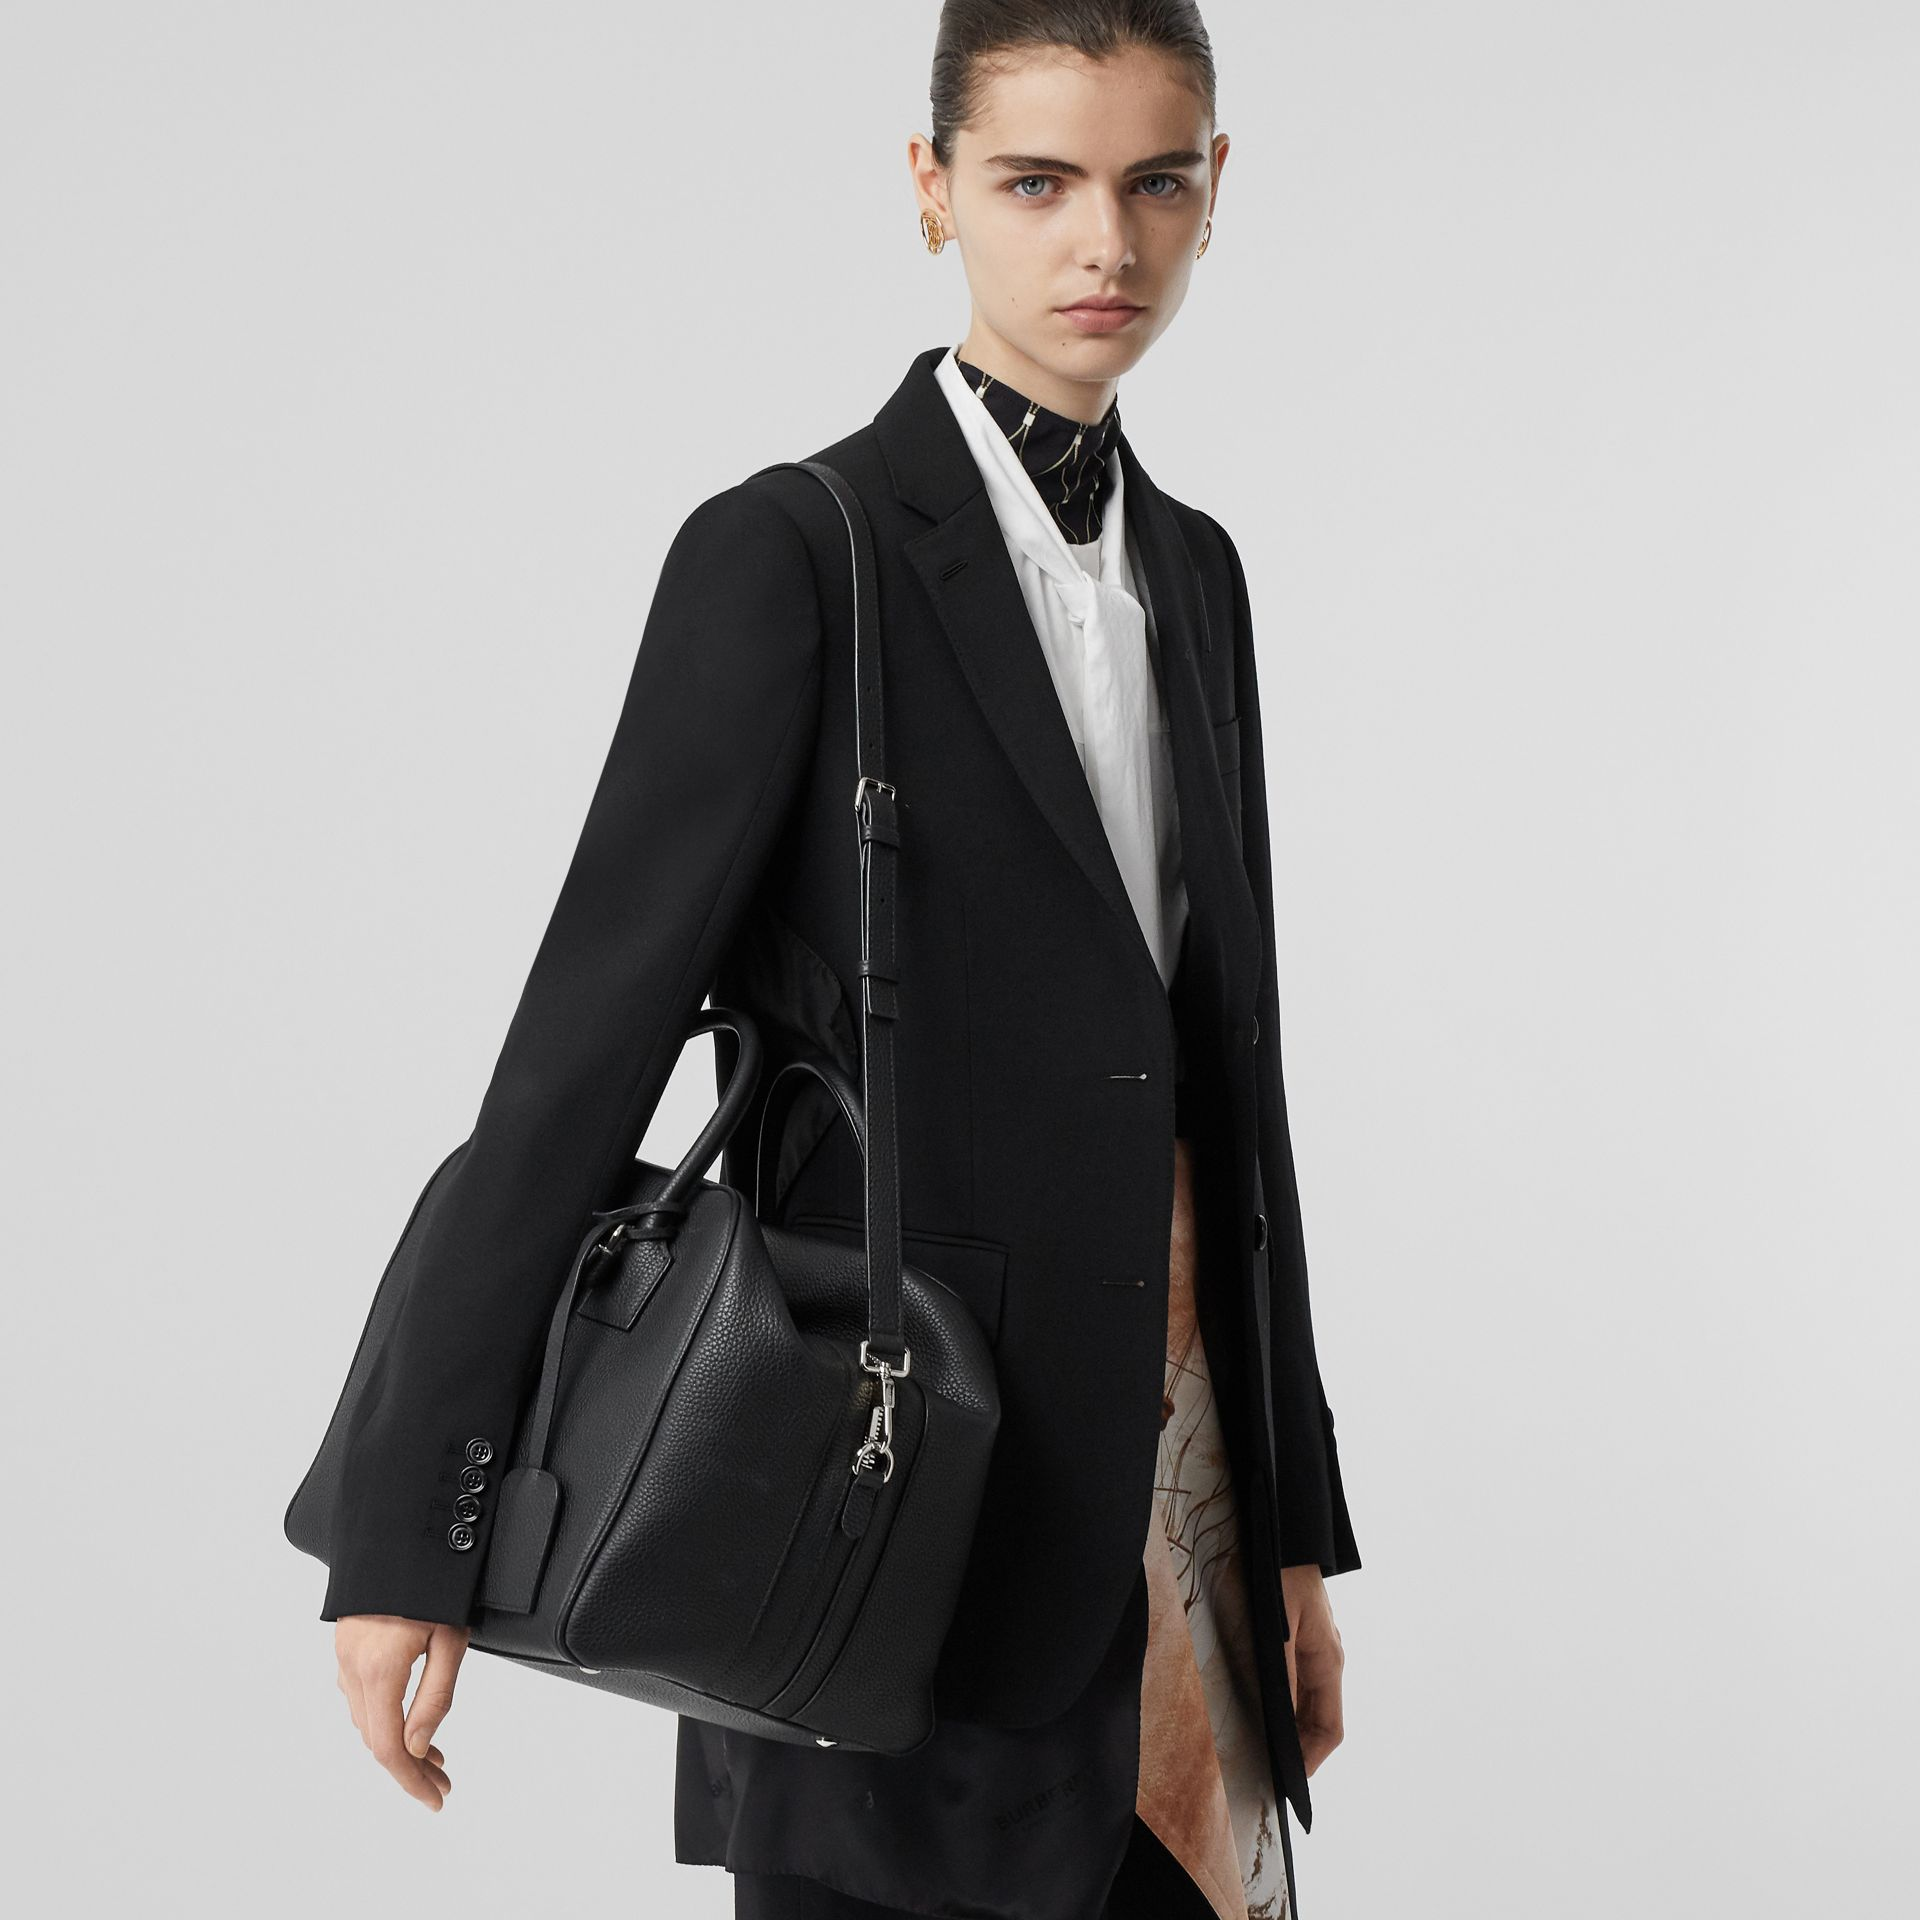 Medium Leather Cube Bag in Black - Women | Burberry - gallery image 2